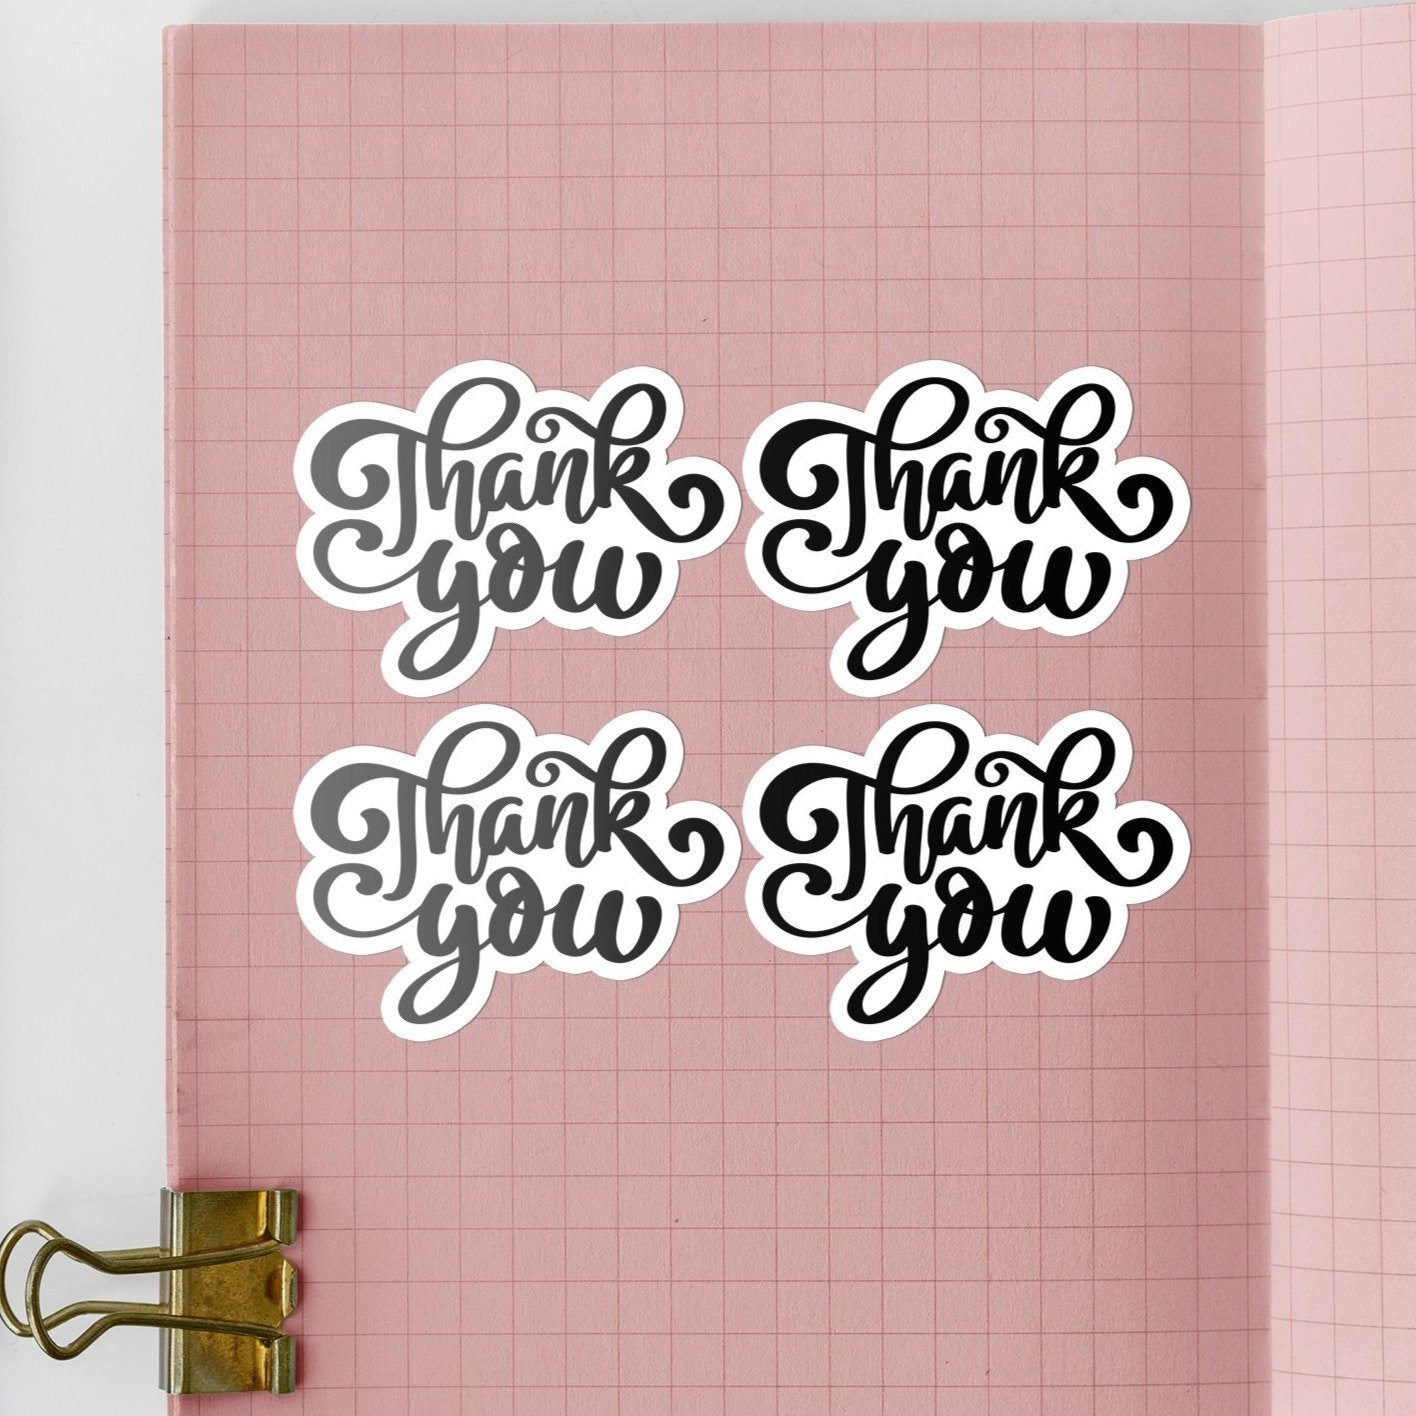 Loopy Thank You | 15 Die-Cut Happy Mail Stickers Happy Mail Stickers Sweet Backflip